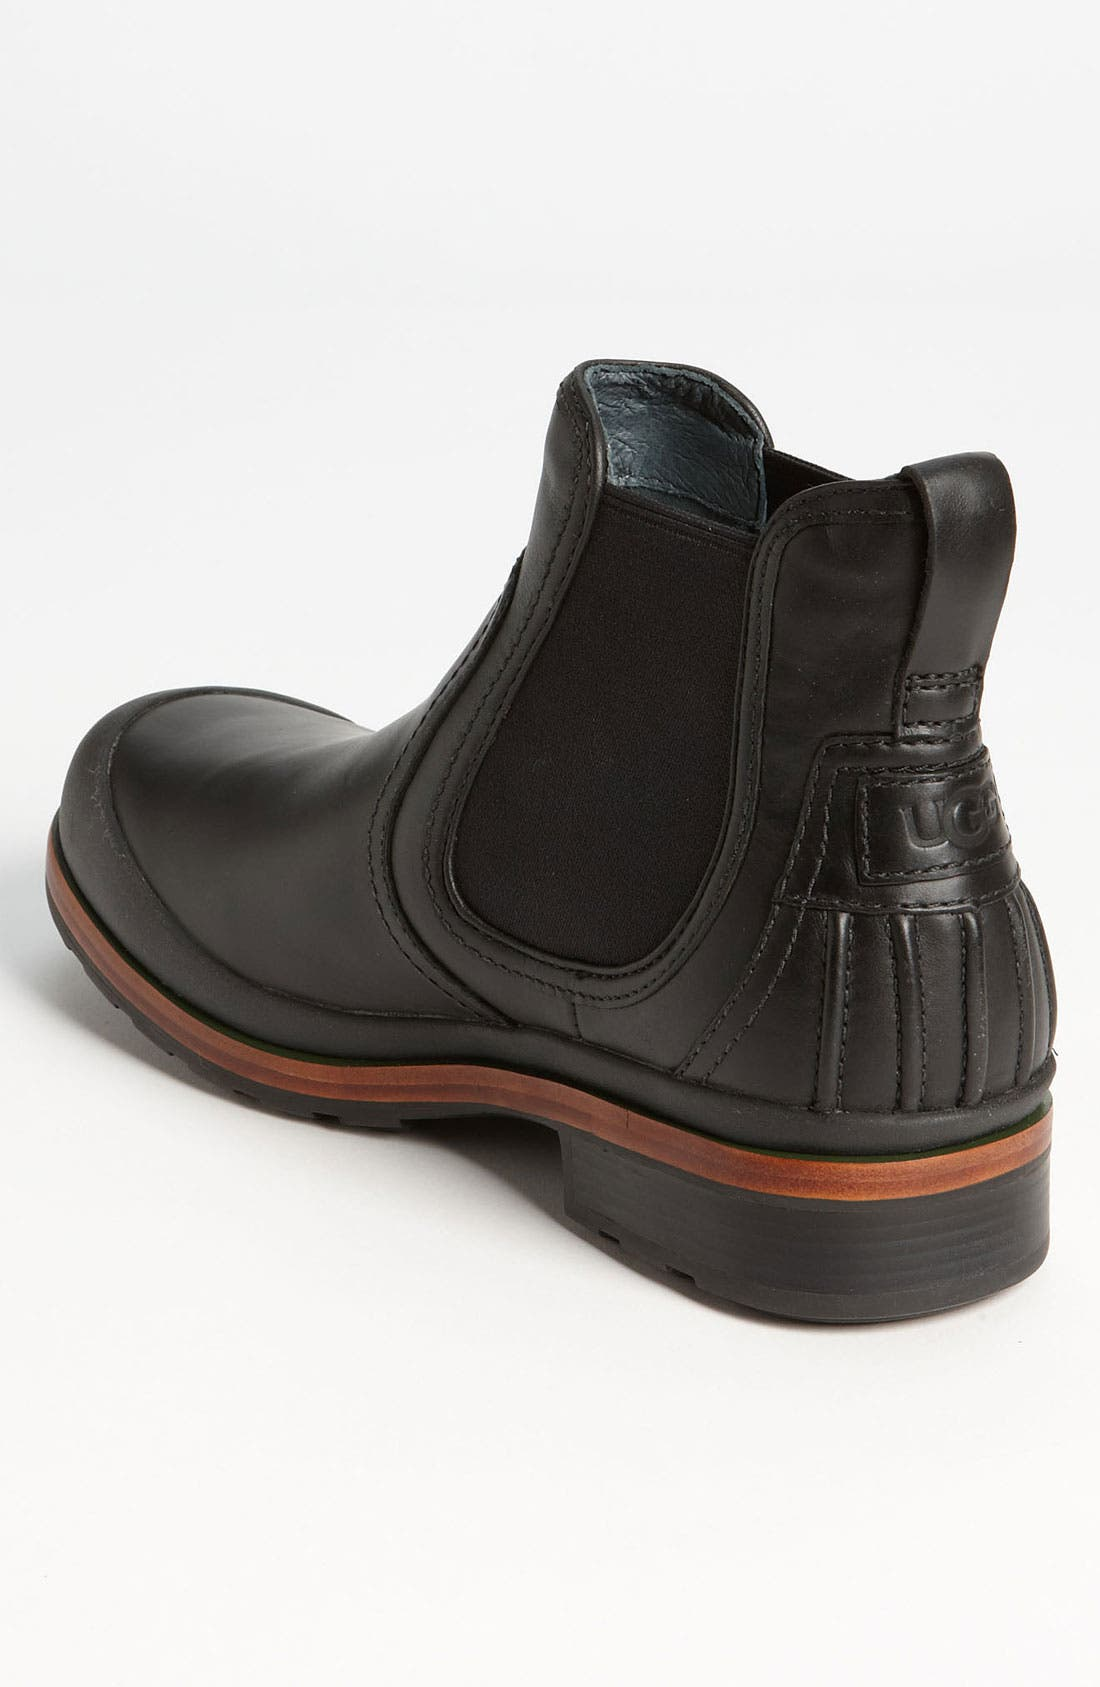 Australia 'Matteson' Chelsea Boot,                             Alternate thumbnail 4, color,                             001